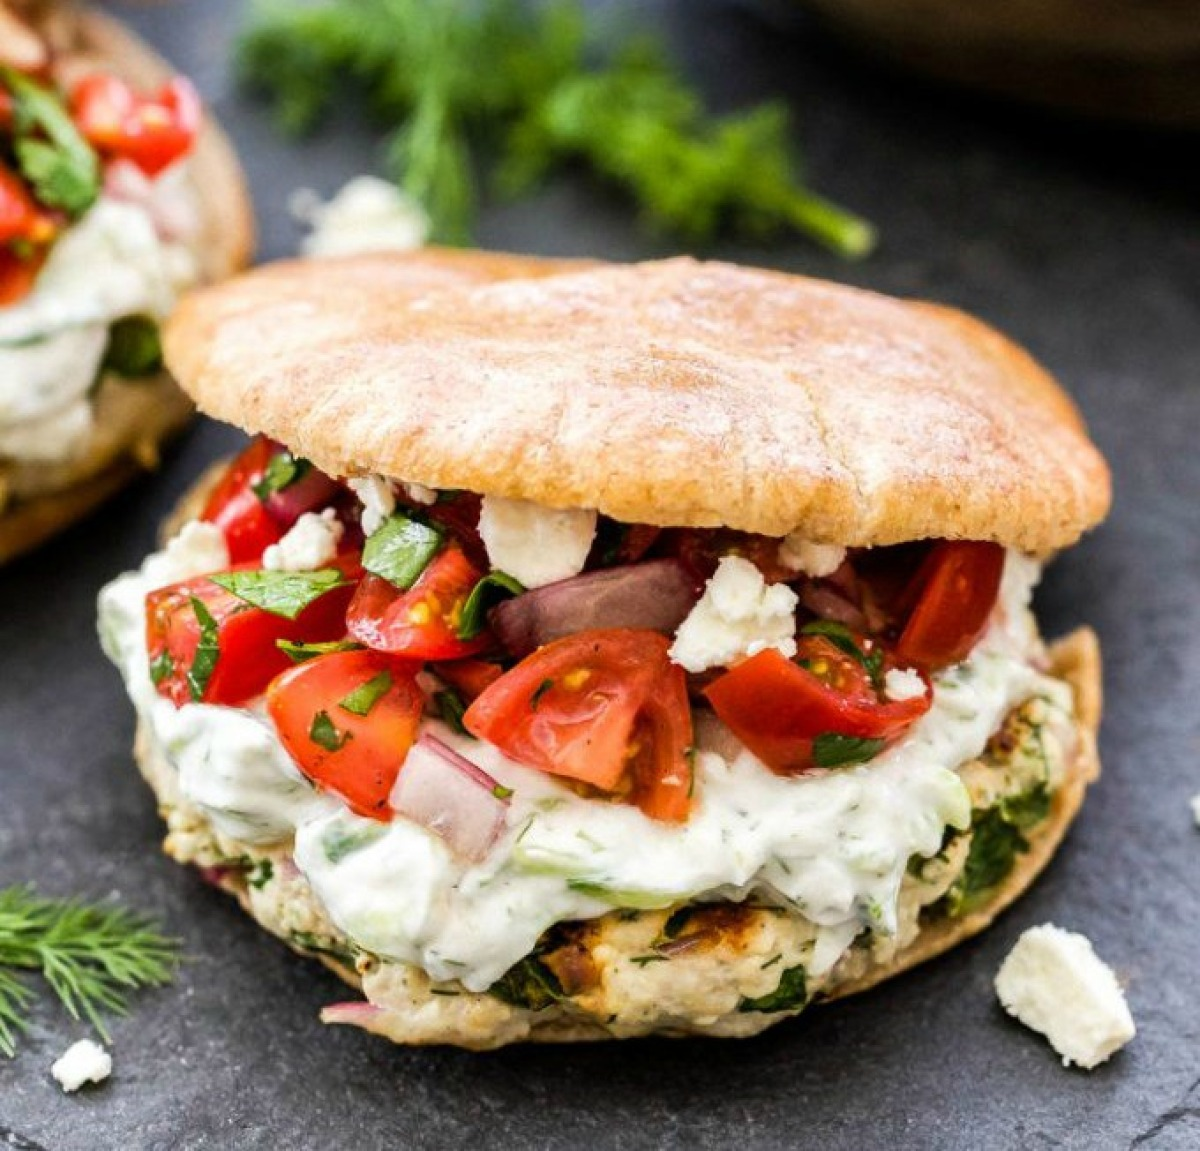 turkey burger with vegetables and white sauce on pita bread